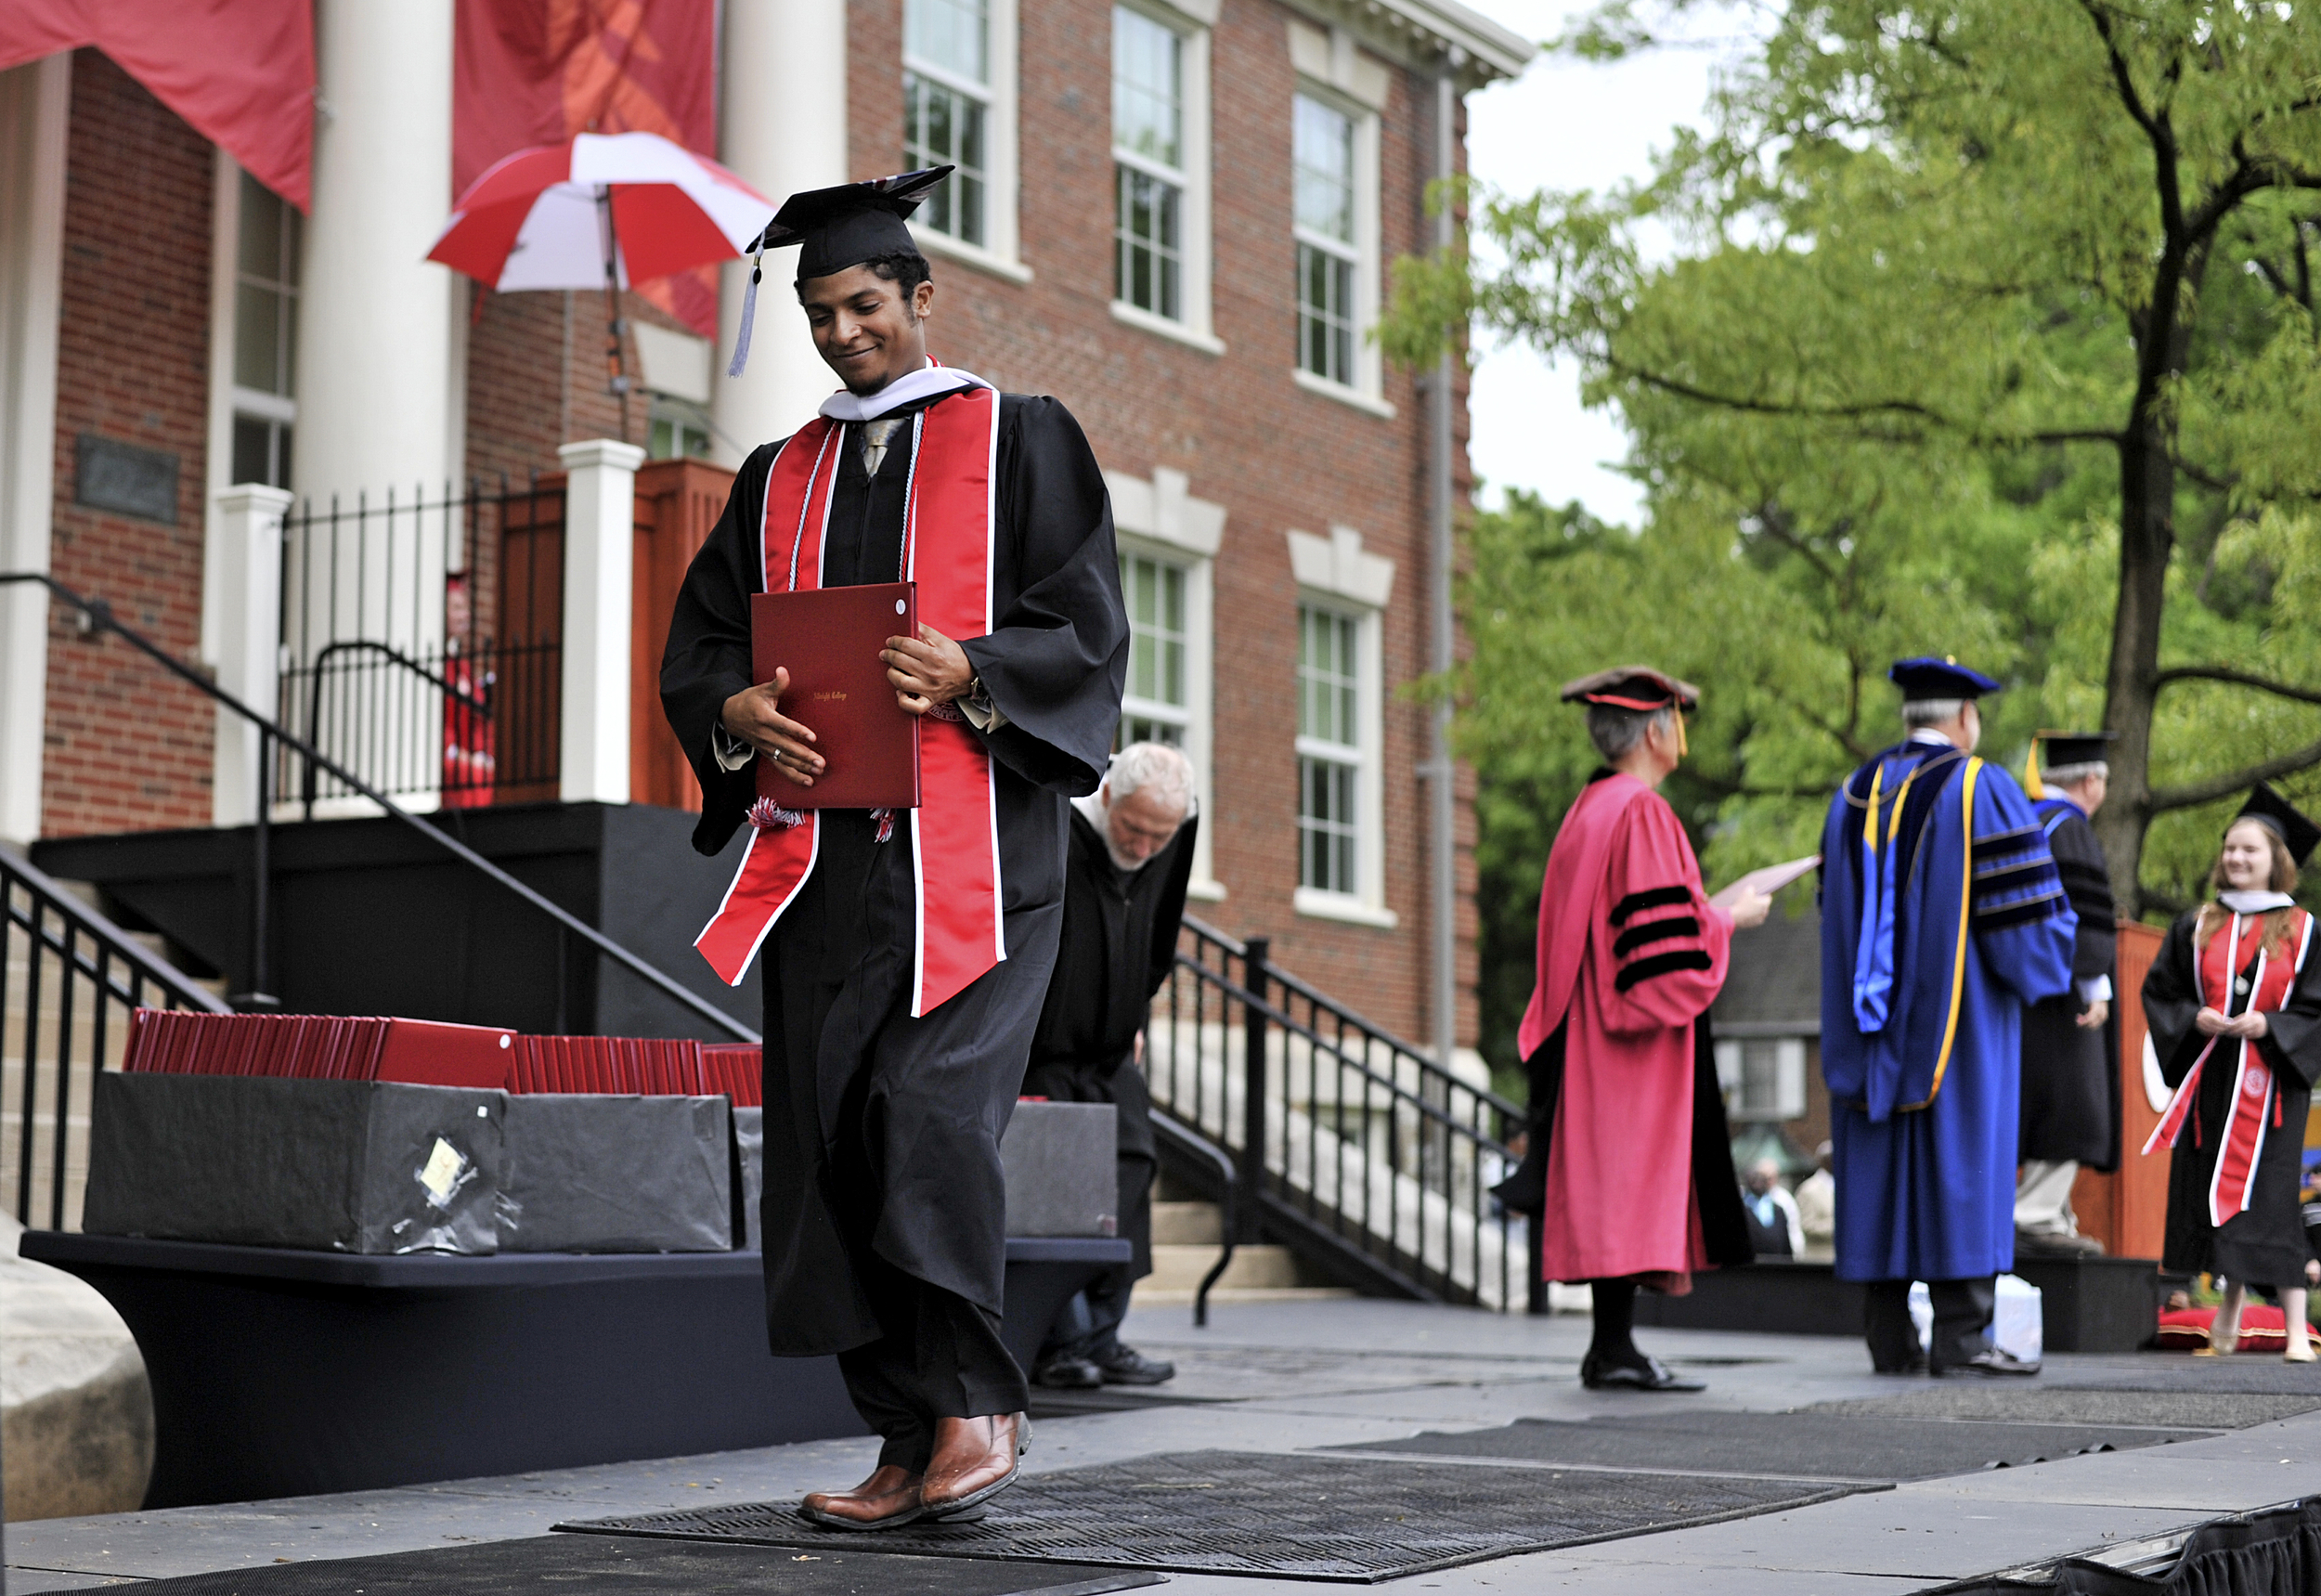 Alexio Kyoshi-Tuari Barboza receives his Bachelor of Arts degree at the Albright College commencement ceremony on May 22, 2016. (Reading Eagle: Sarah Stier)